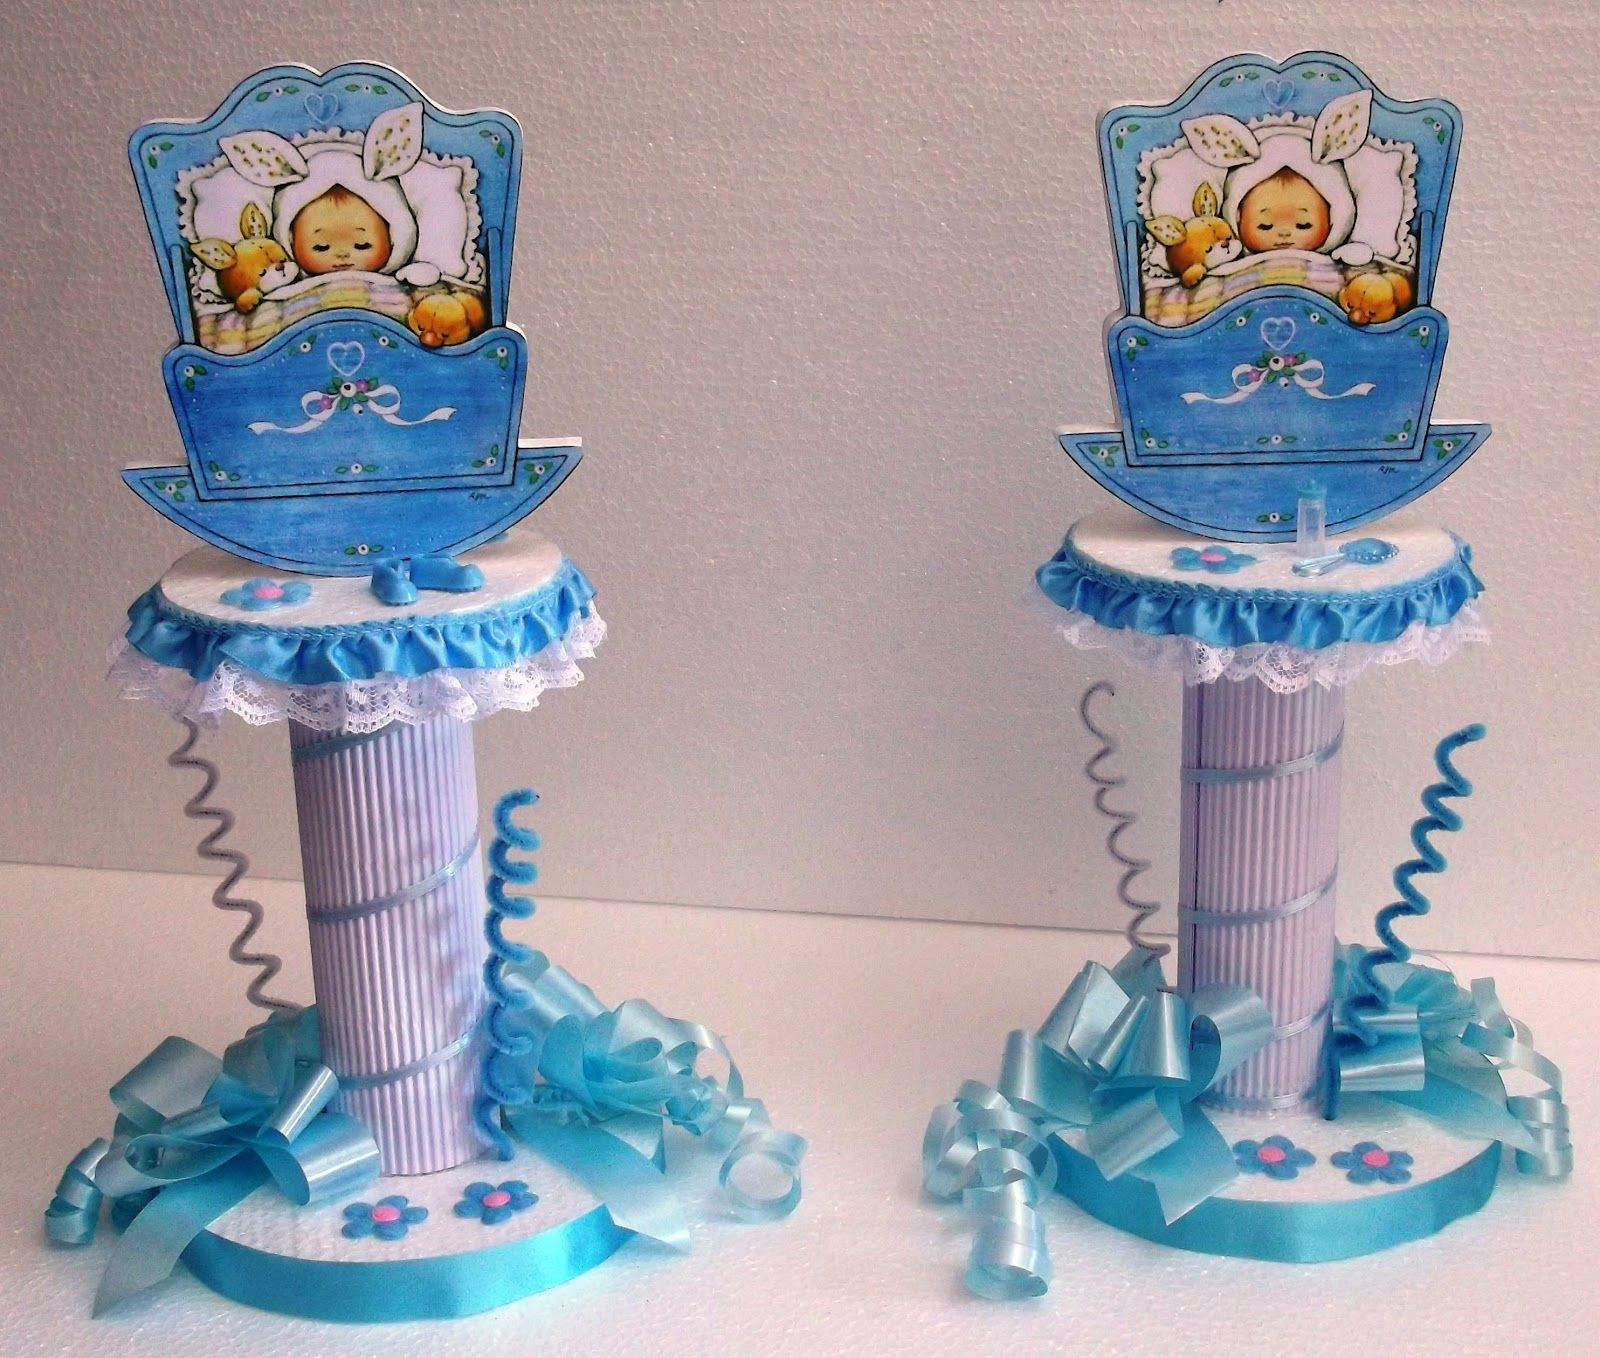 Eventos para tu beb centro de mesa para baby shower o for Mesa baby shower nino